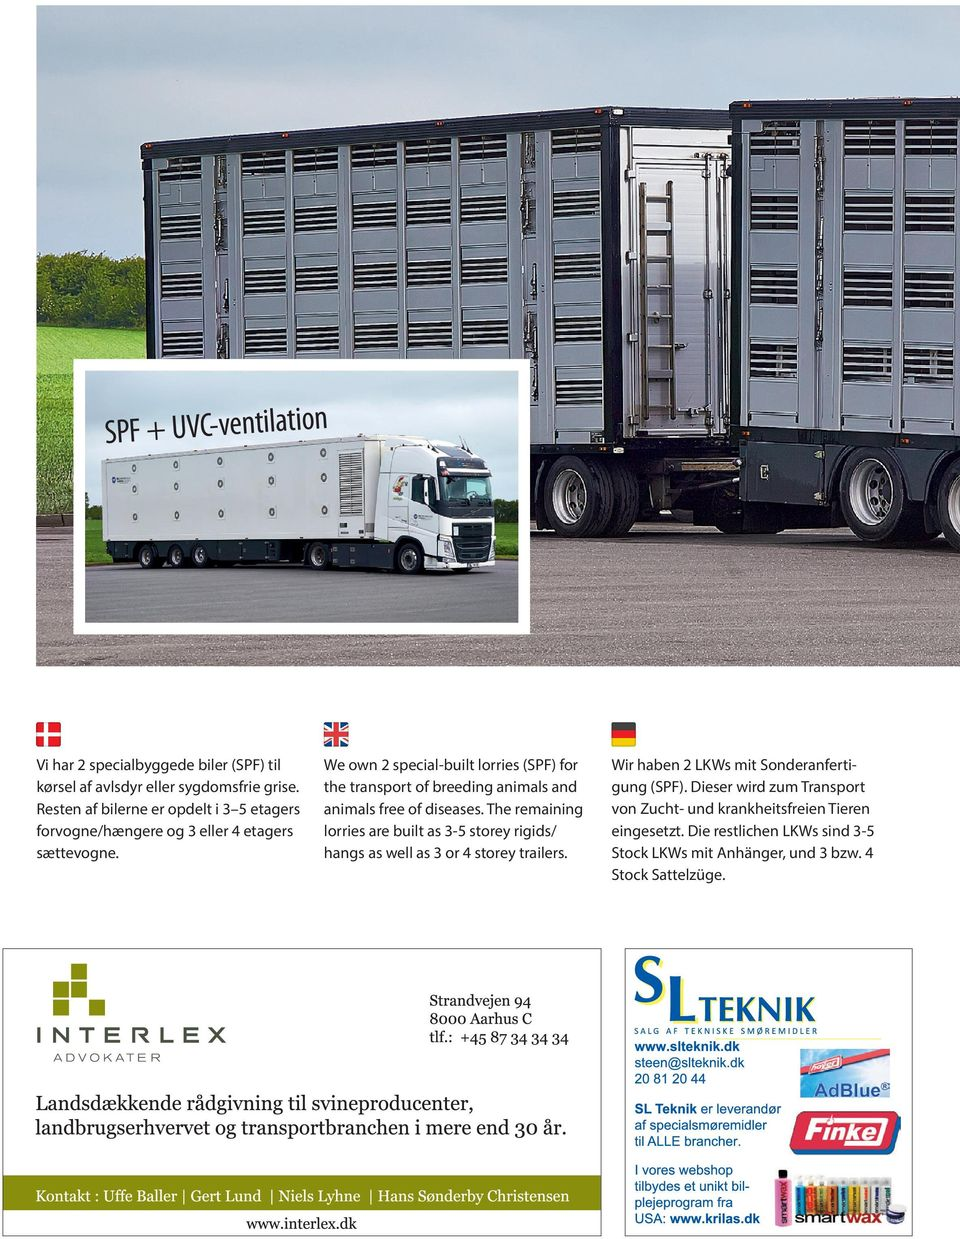 We own 2 special-built lorries (SPF) for the transport of breeding animals and animals free of diseases.